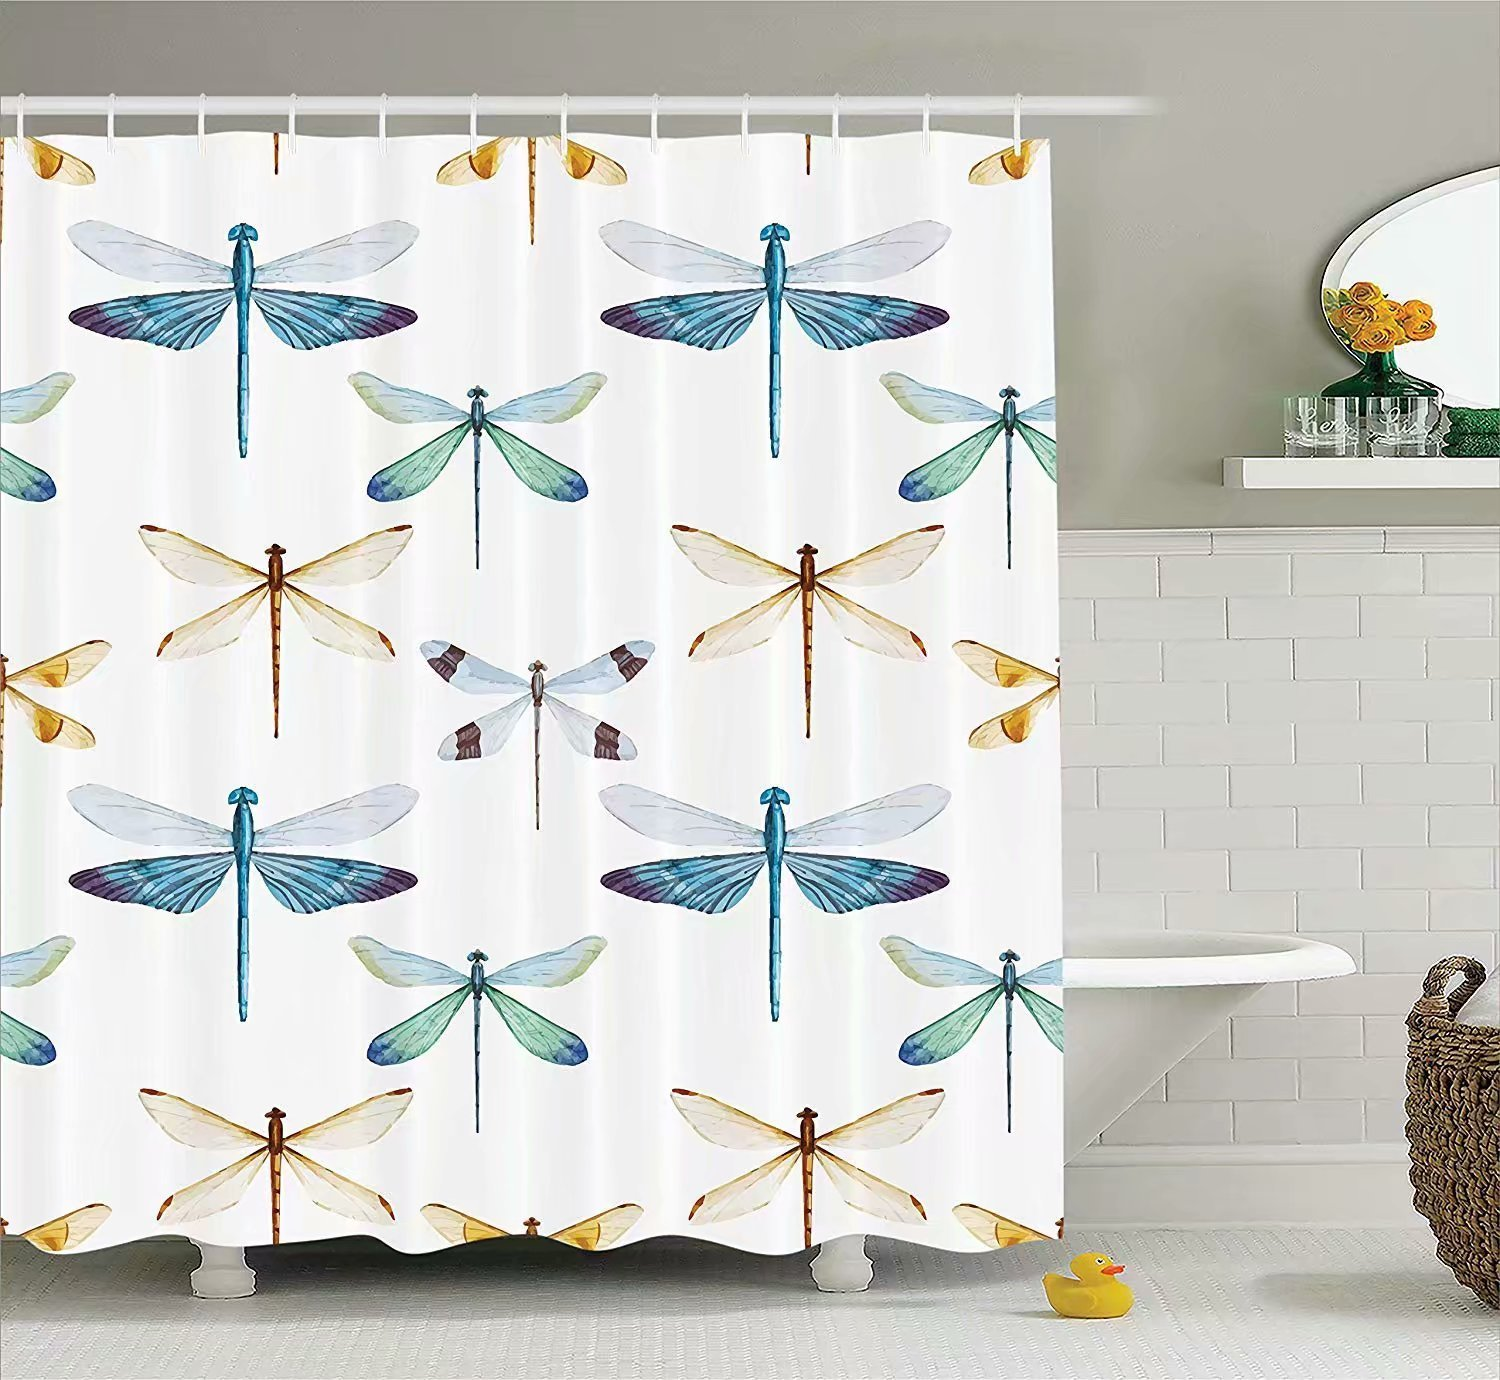 KANATSIU Collection Regularly Dragonfly Pattern Composition Bugs Shower Curtain 12 plactic Hooks,100% Made Polyester,Mildew Resistant & Machine Washable,Width x Height is 72x72